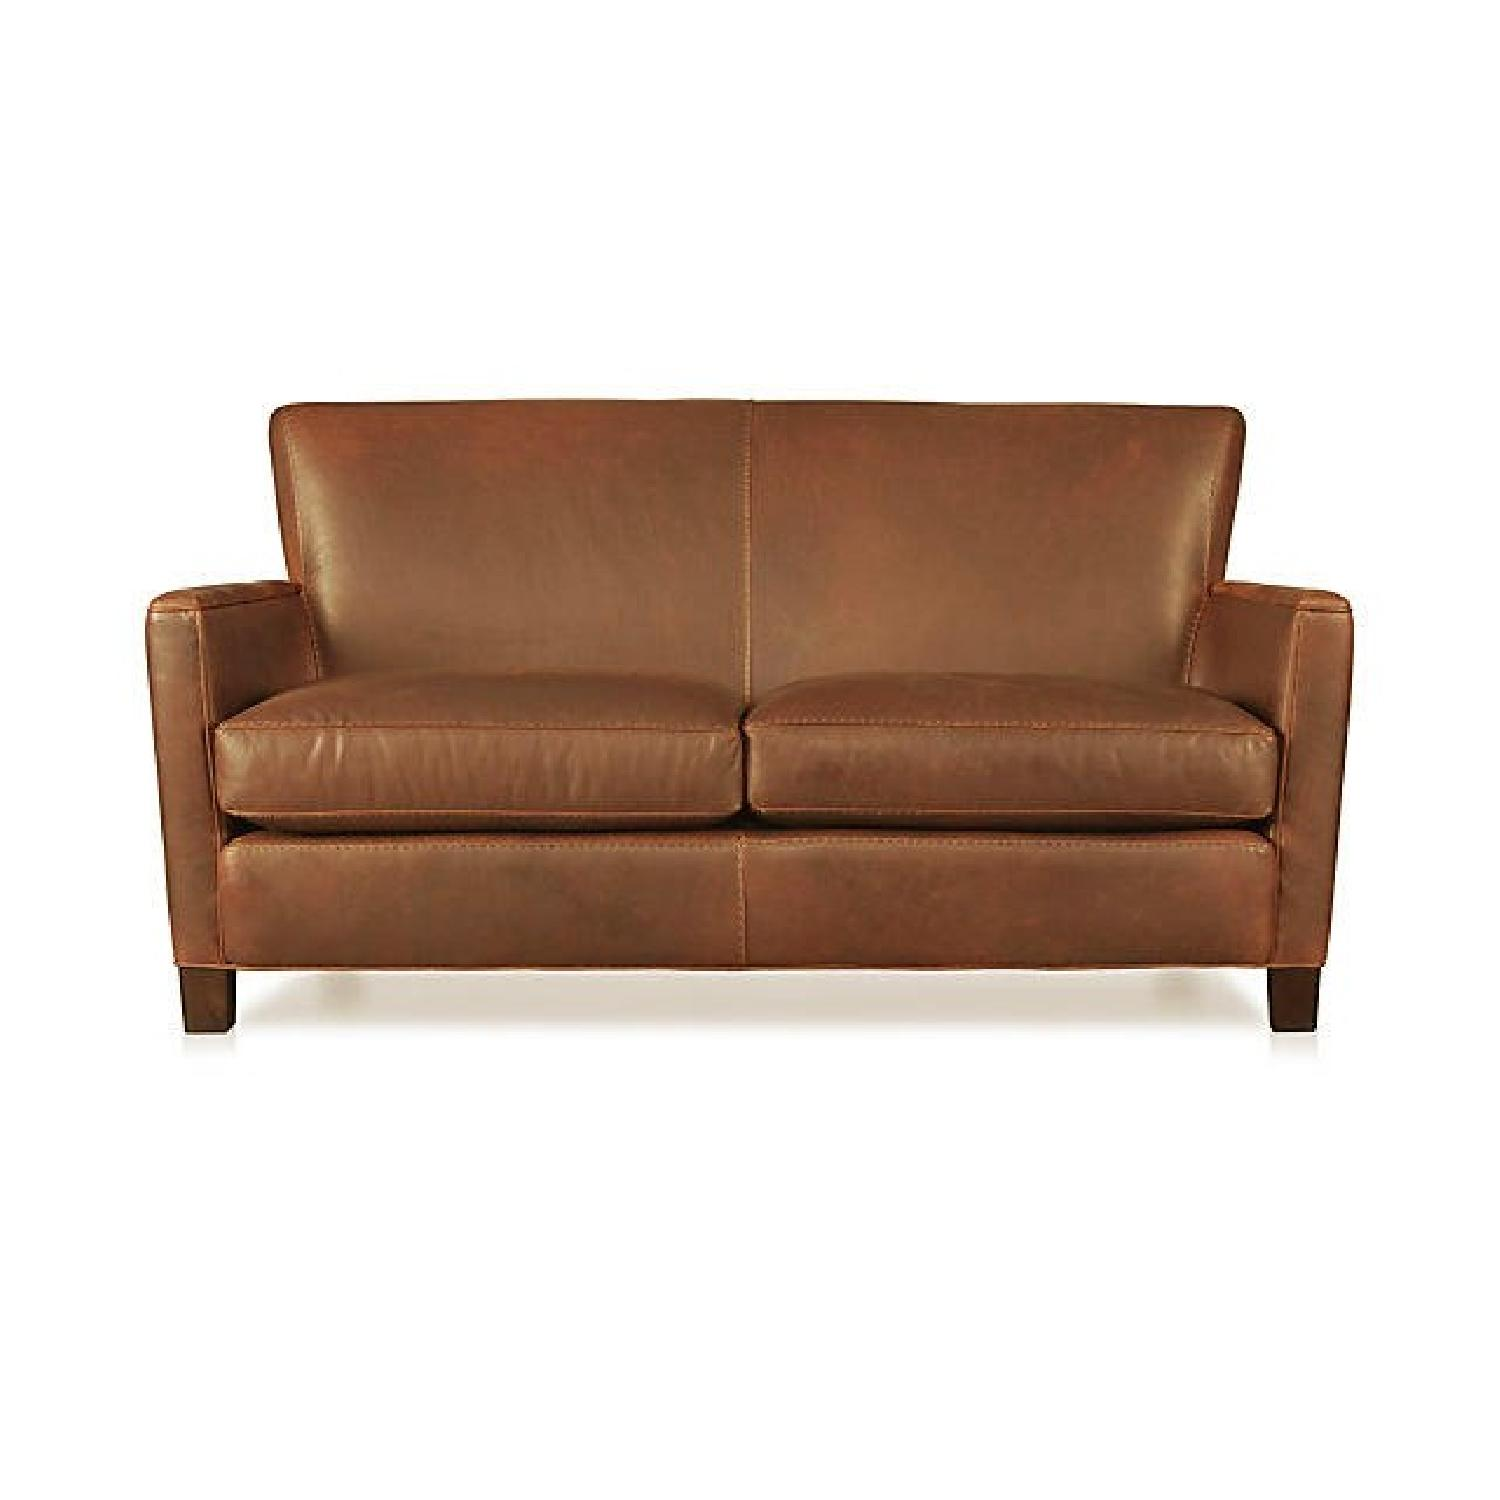 Crate & Barrel Briarwood Leather Loveseat